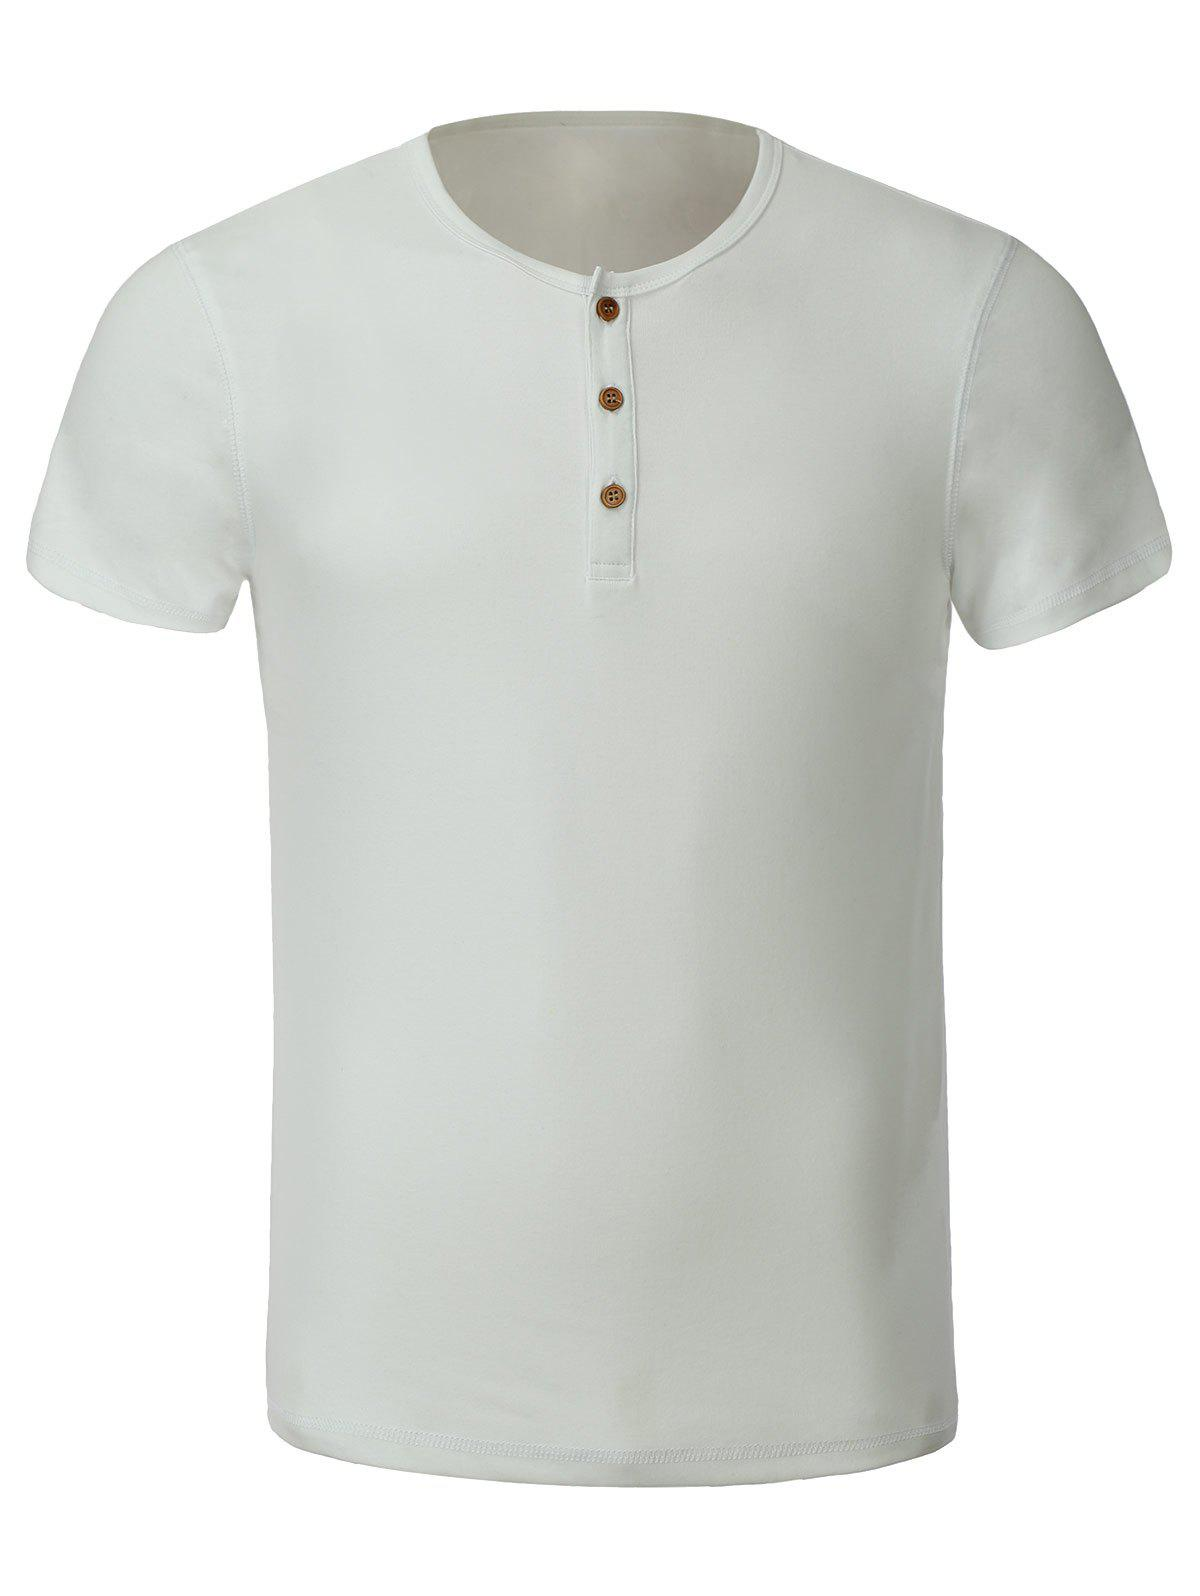 Chic Casual Solid Color Round Collar Short Sleeves T-Shirt For Men